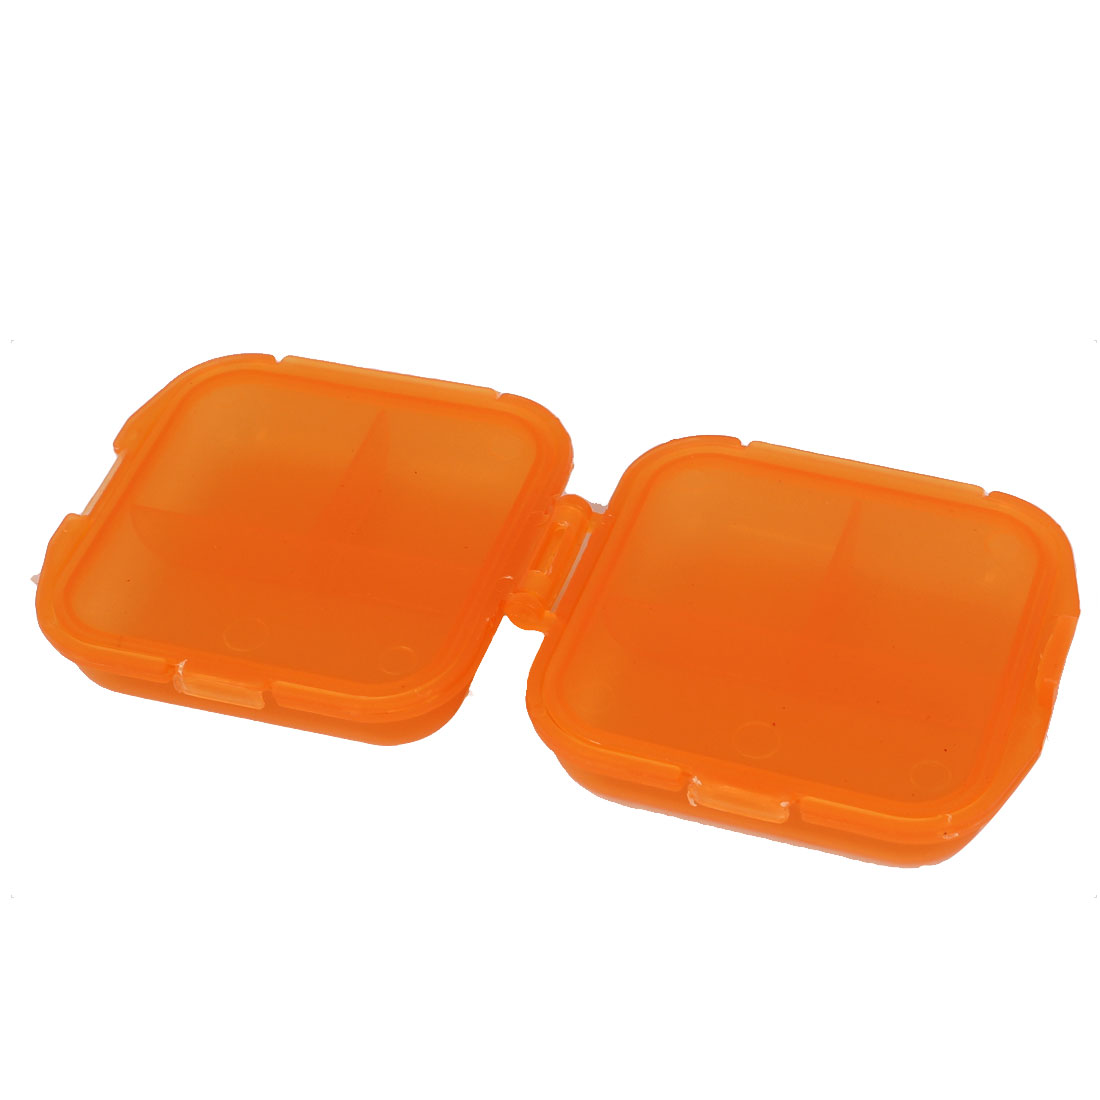 Plastic Rectangle Shape 6 Compartments Medicine Pill Storage Case Box Orange